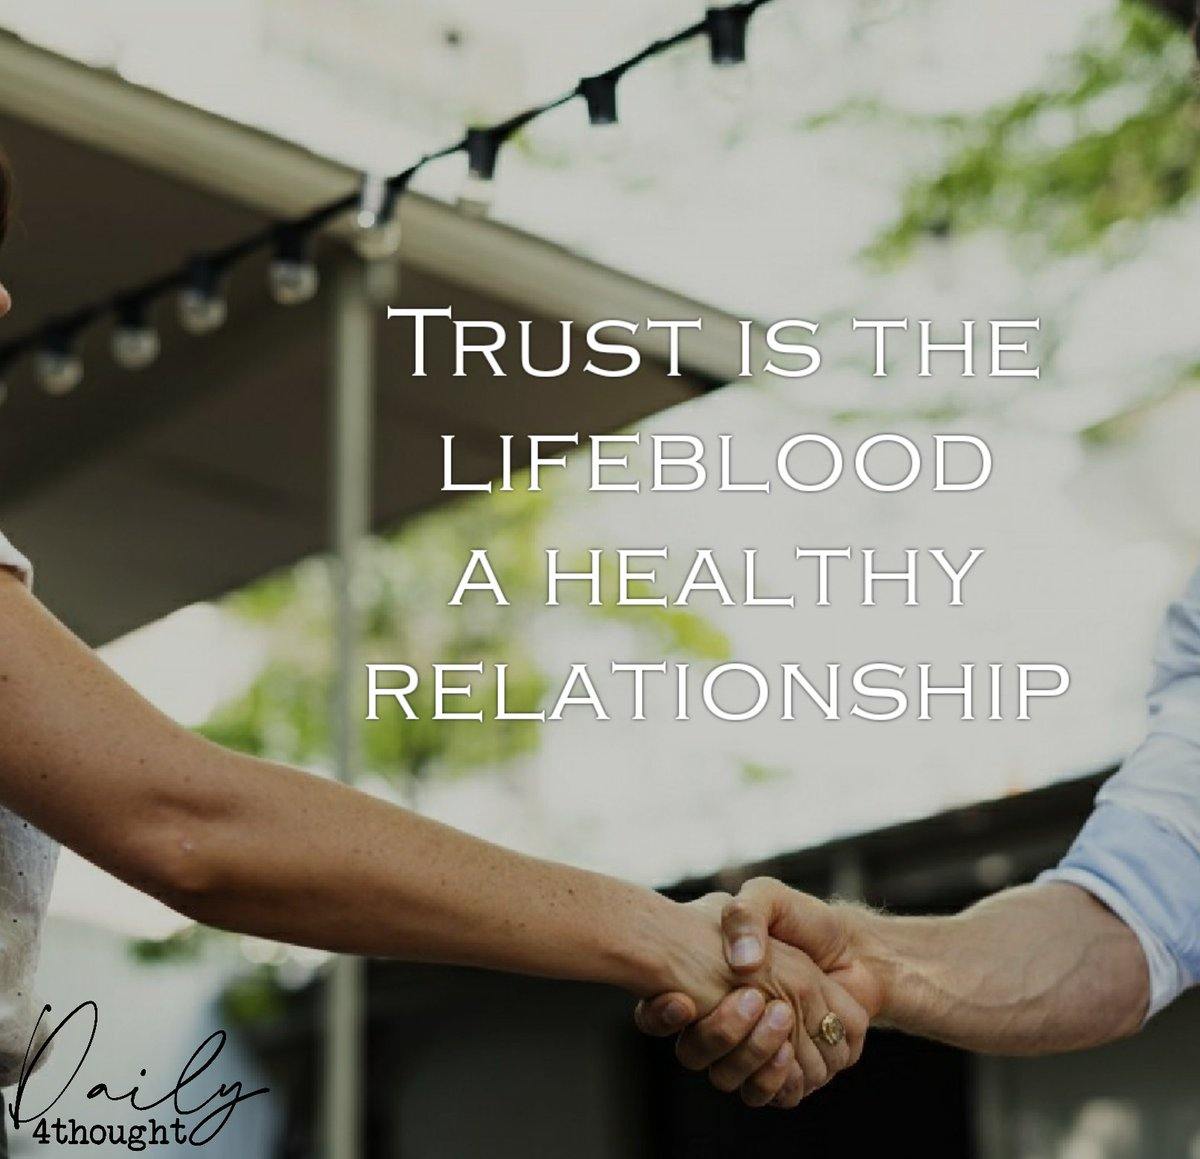 A #relationship without #trust is like a car without gas. It doesn't matter how long you stay in it, you're not going anywhere  #friendship #growth #leadership #Mindfulness #mindfulness #love #inspiration